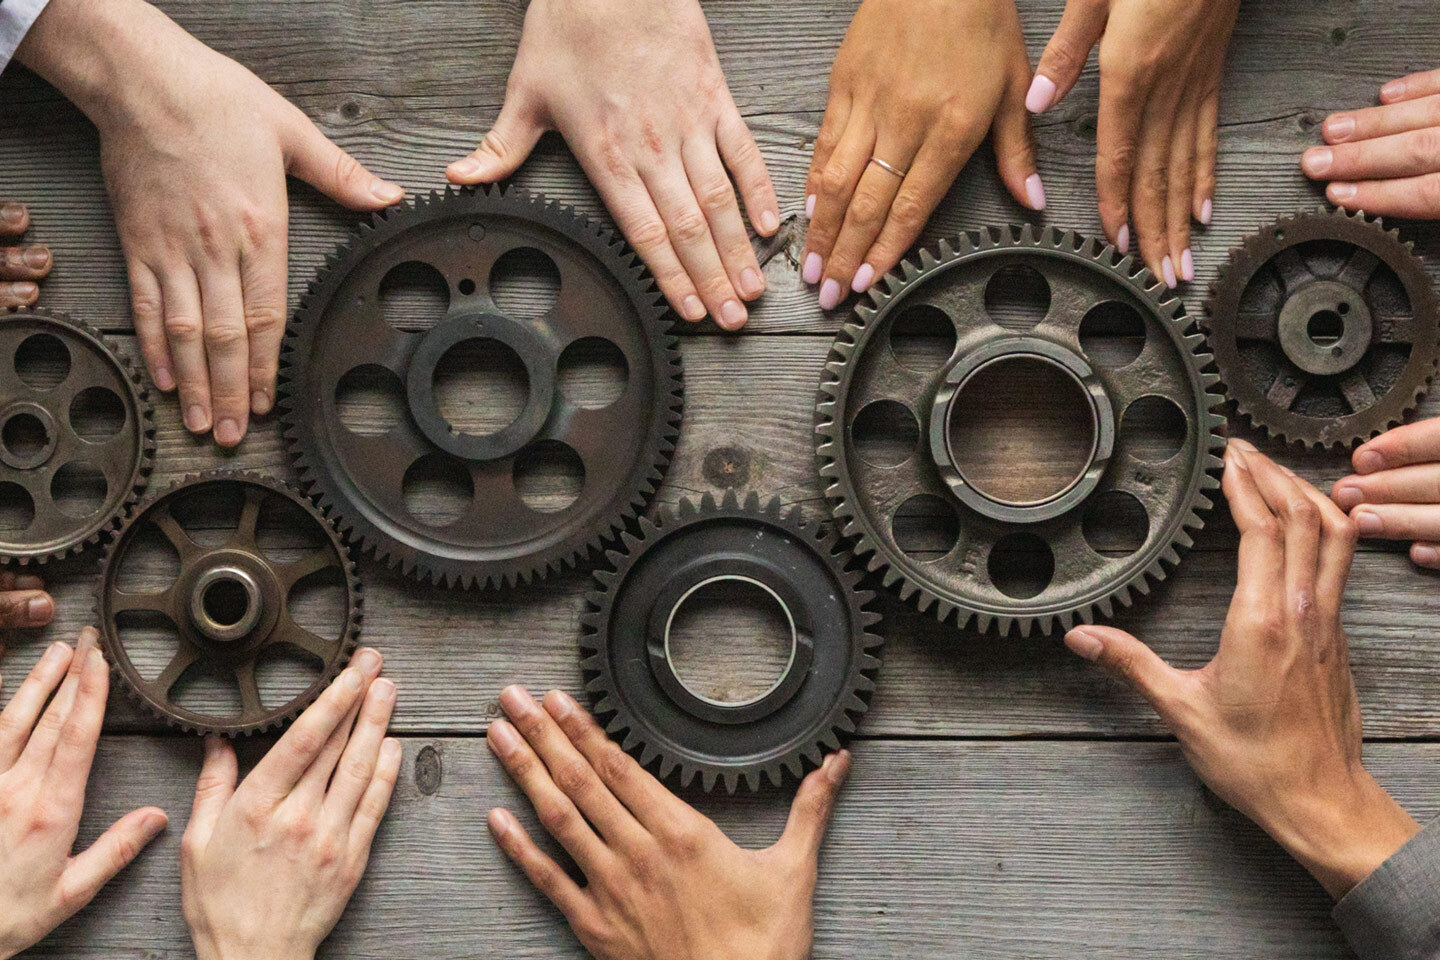 Combined Assurance Hands Holding Gears